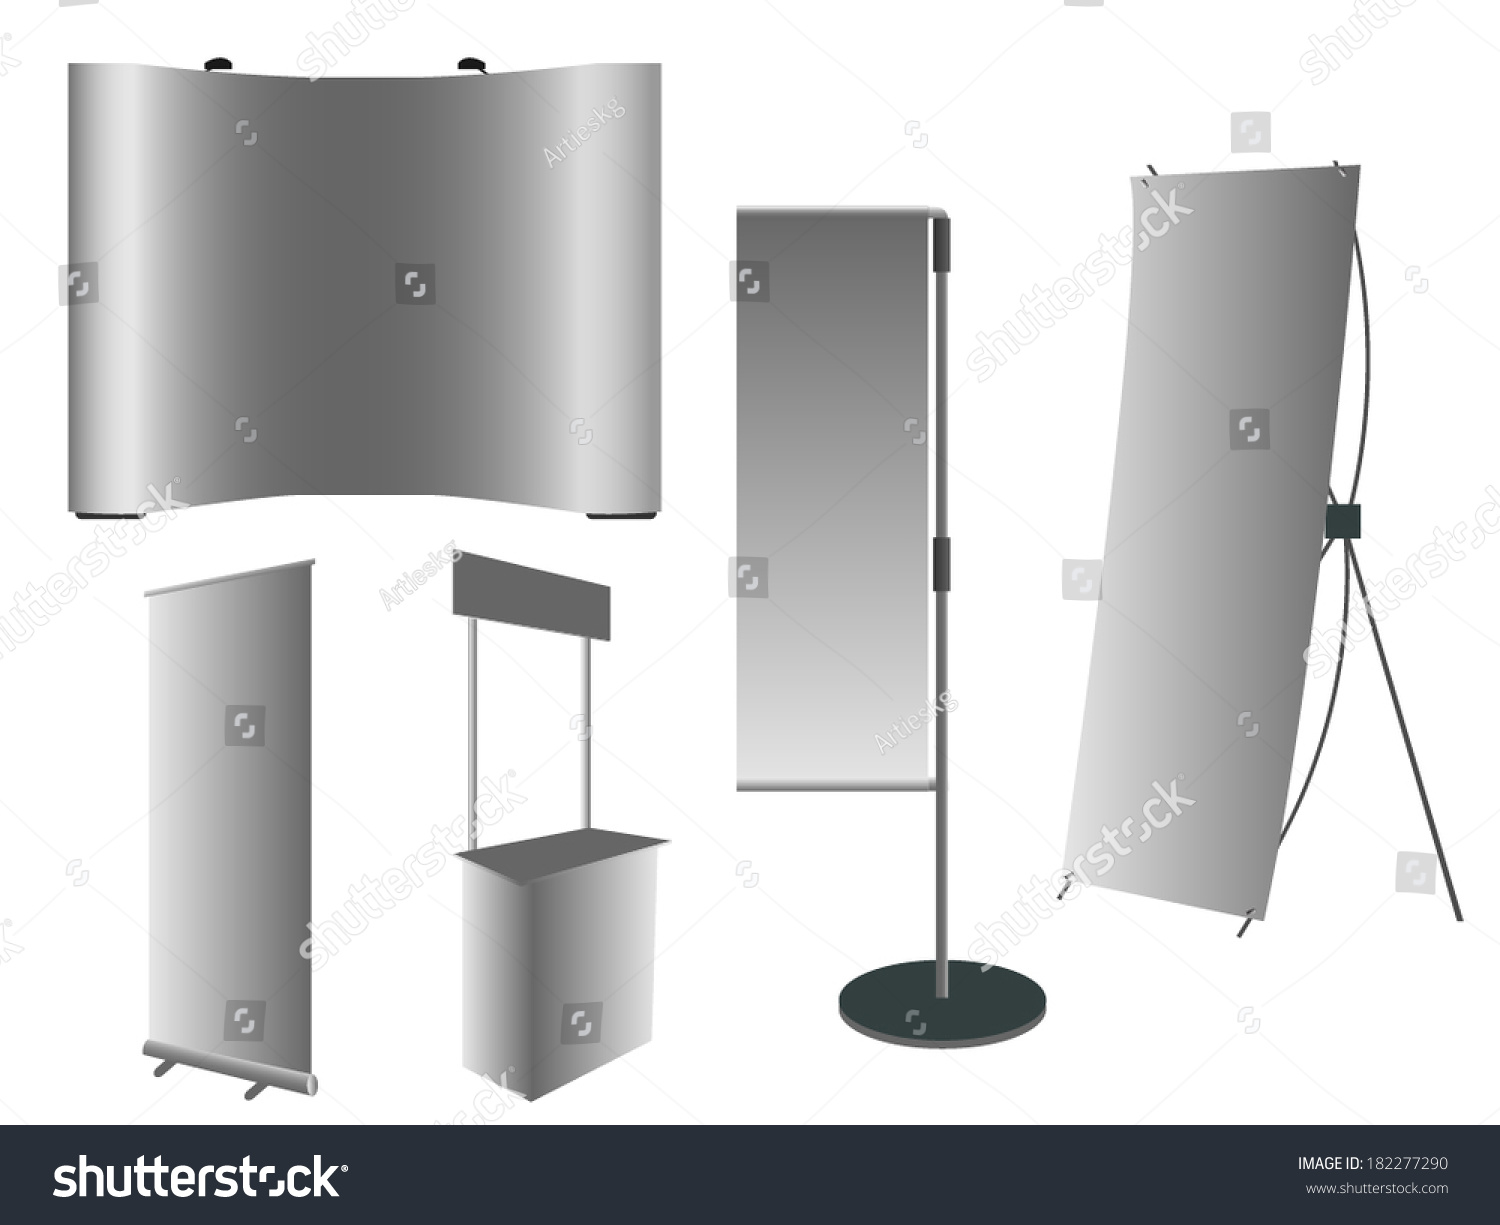 Blank rollup banner jflag poles popup stock vector for Stand roll up